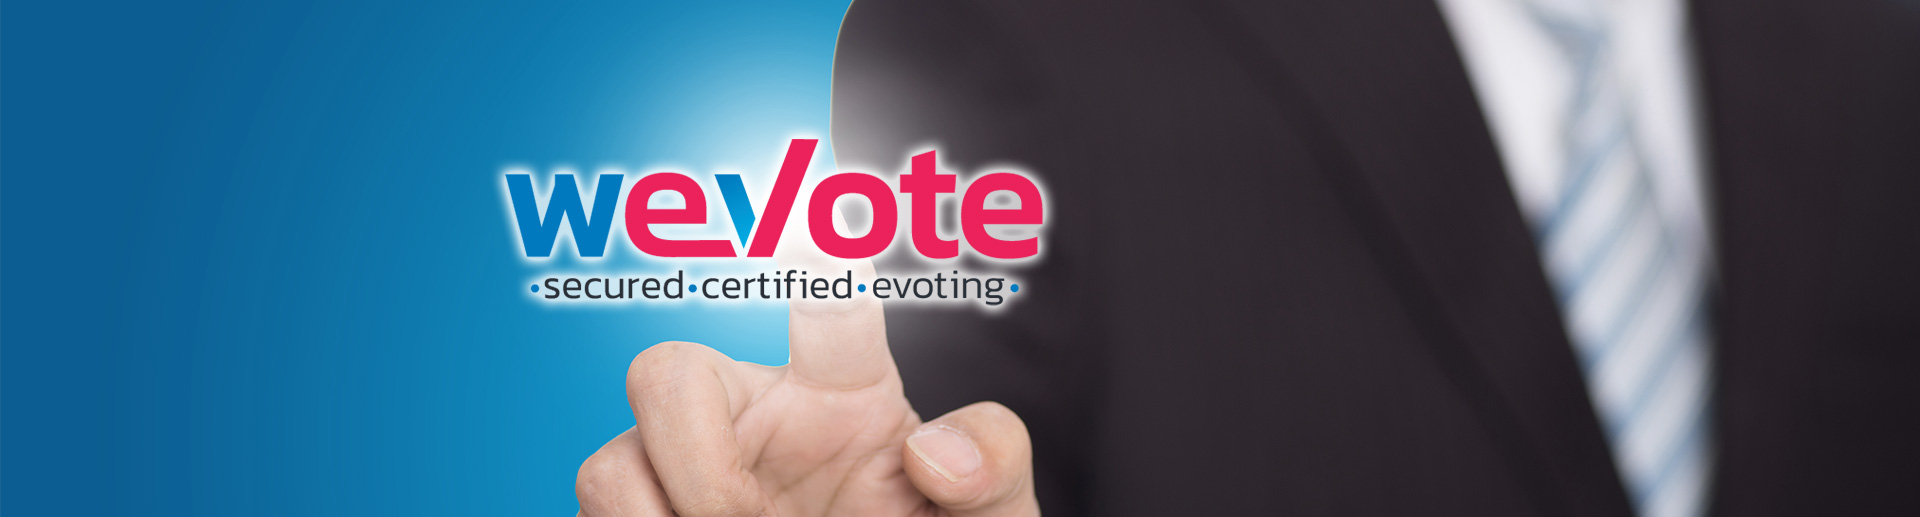 features of the voting system digital assembly wevote